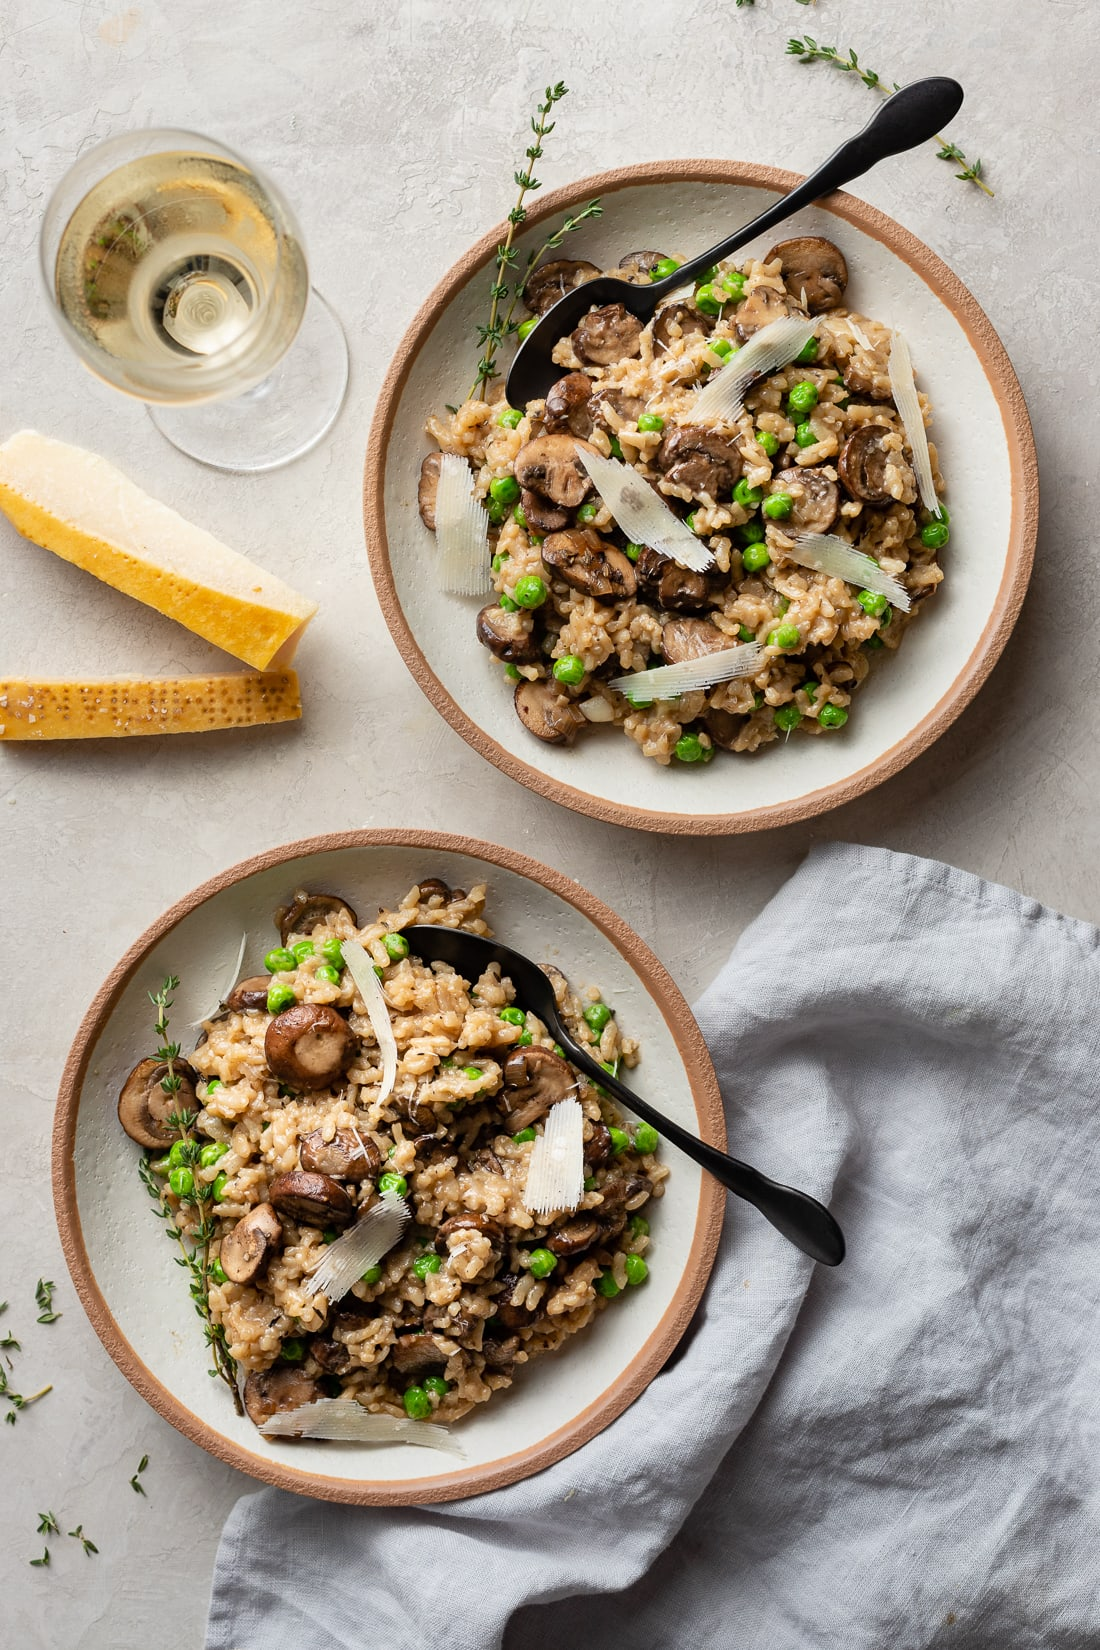 Two bowls of Instant Pot mushroom risotto, a glass of white wine, and Parmesan rinds on the table.